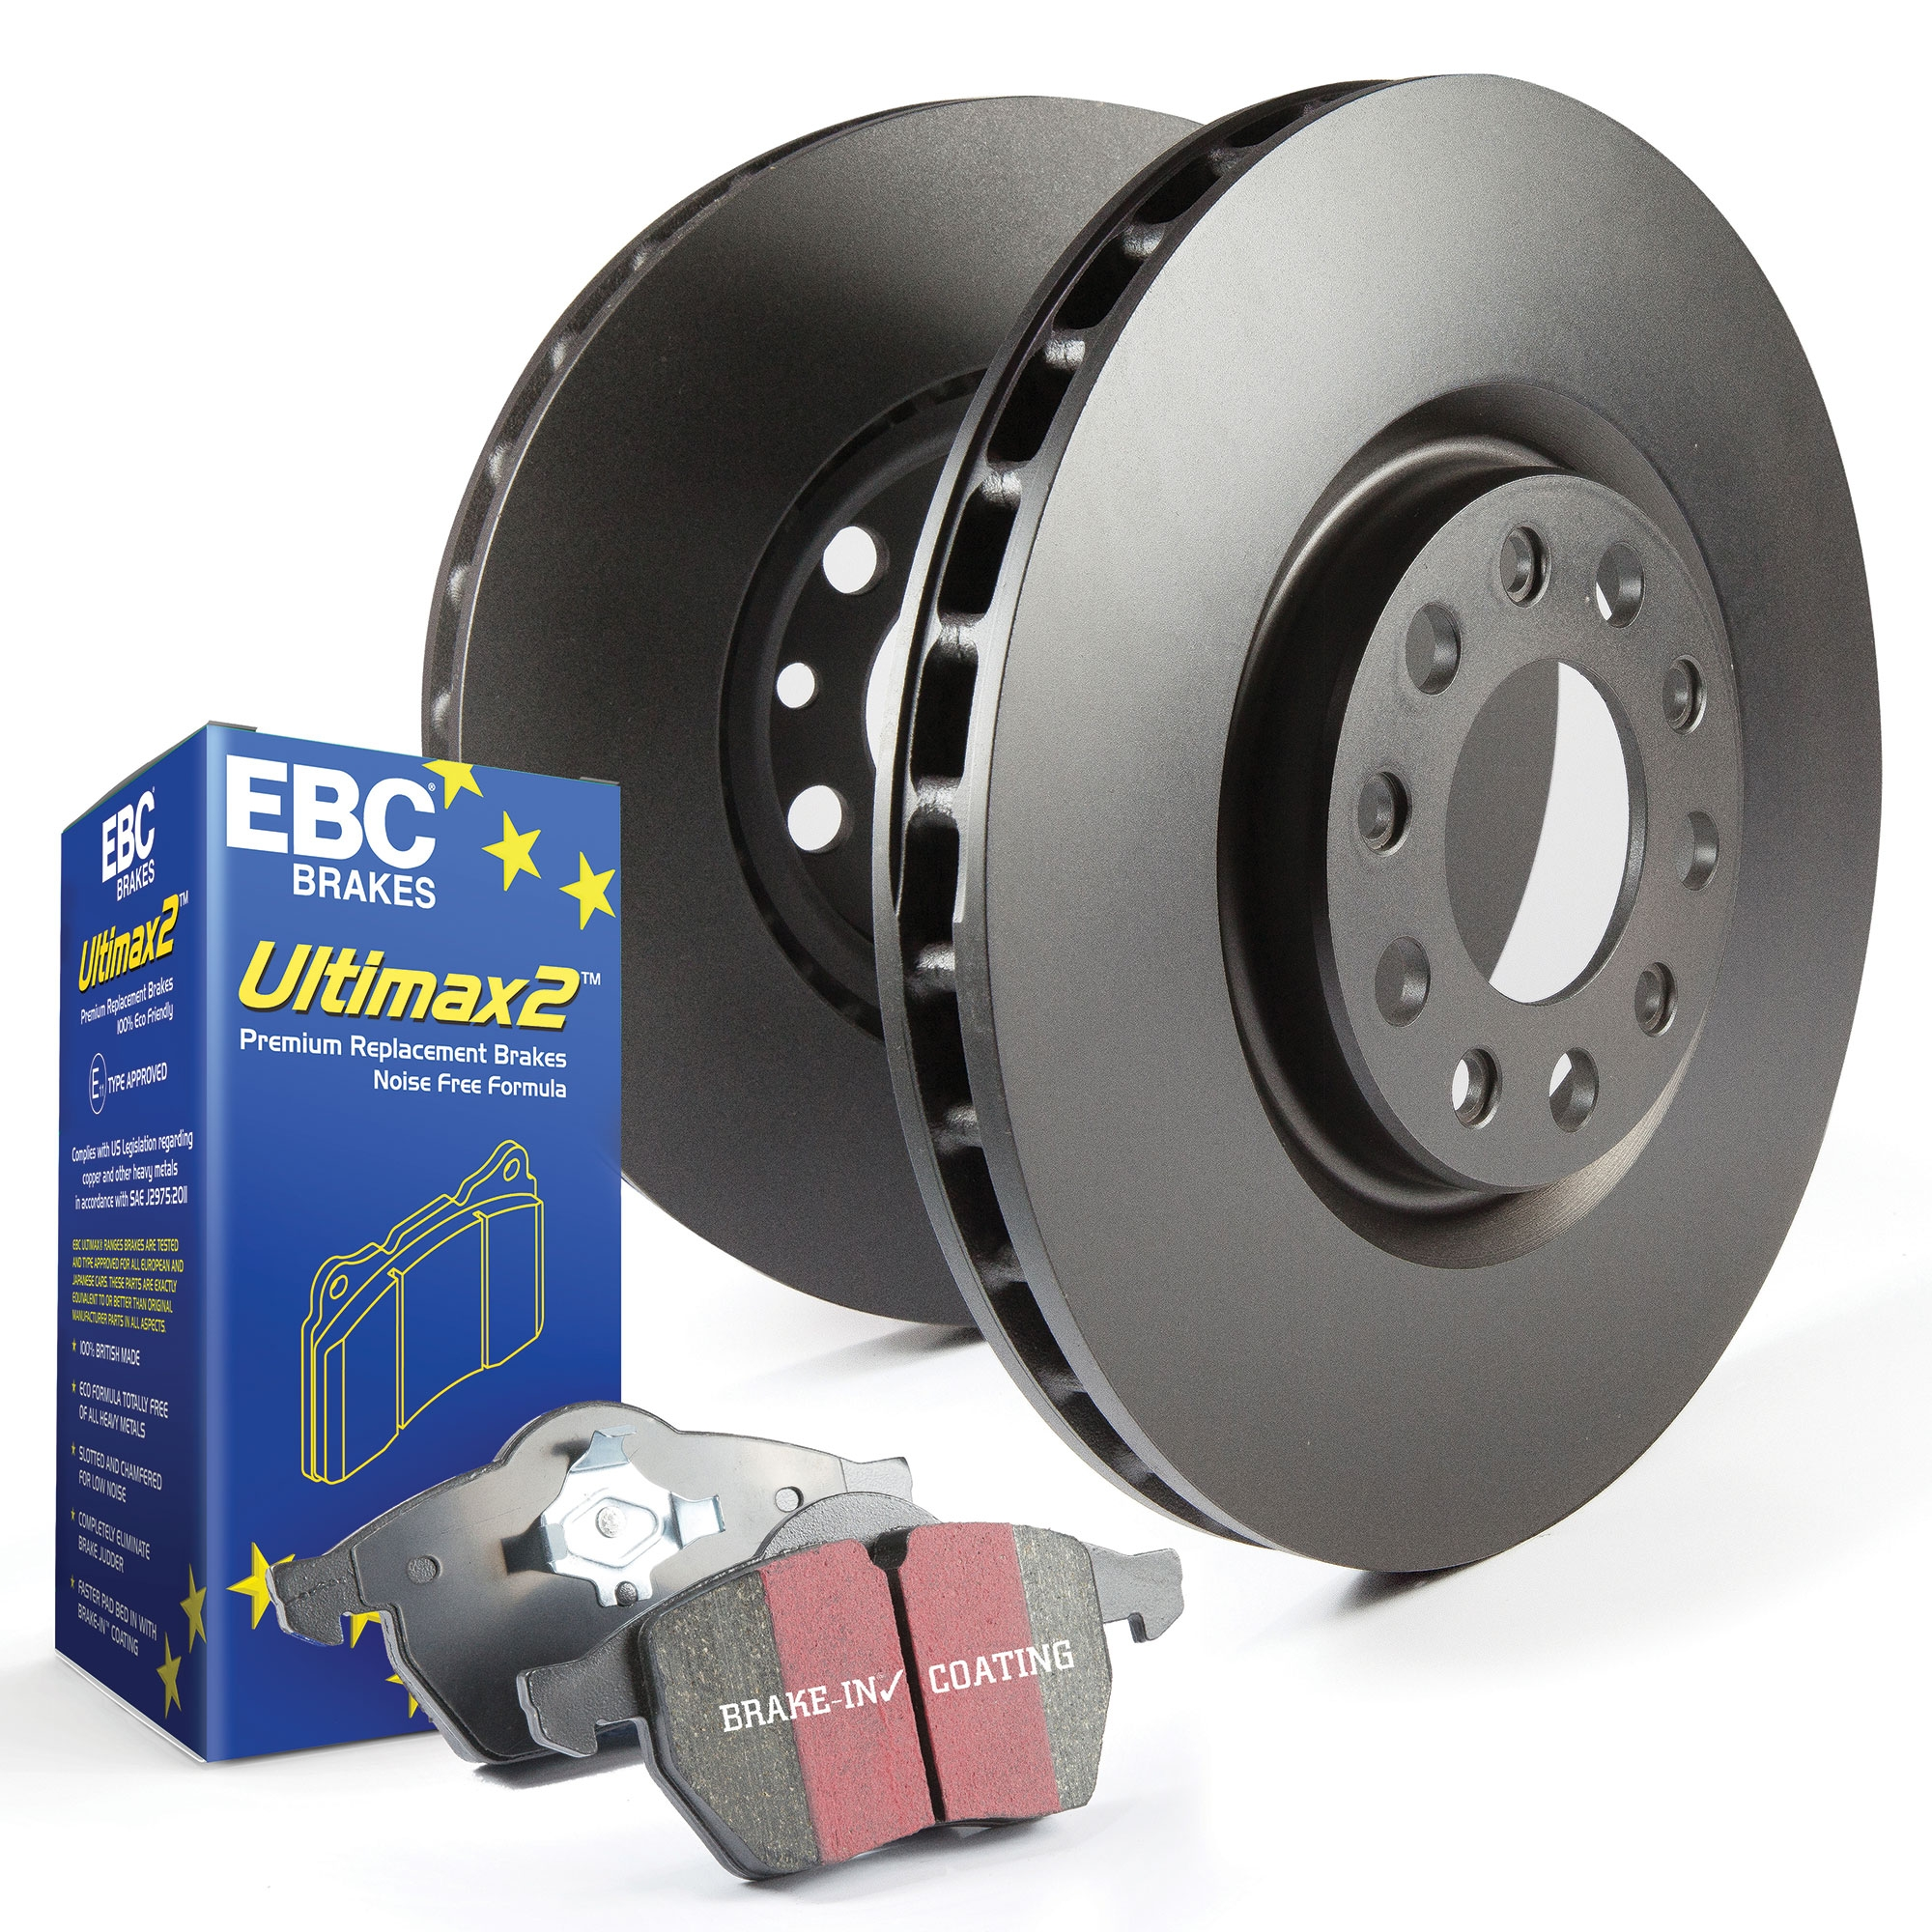 PDKF1403 EBC Front OE//OEM Replacement Brake Discs and Ultimax Pads Kit